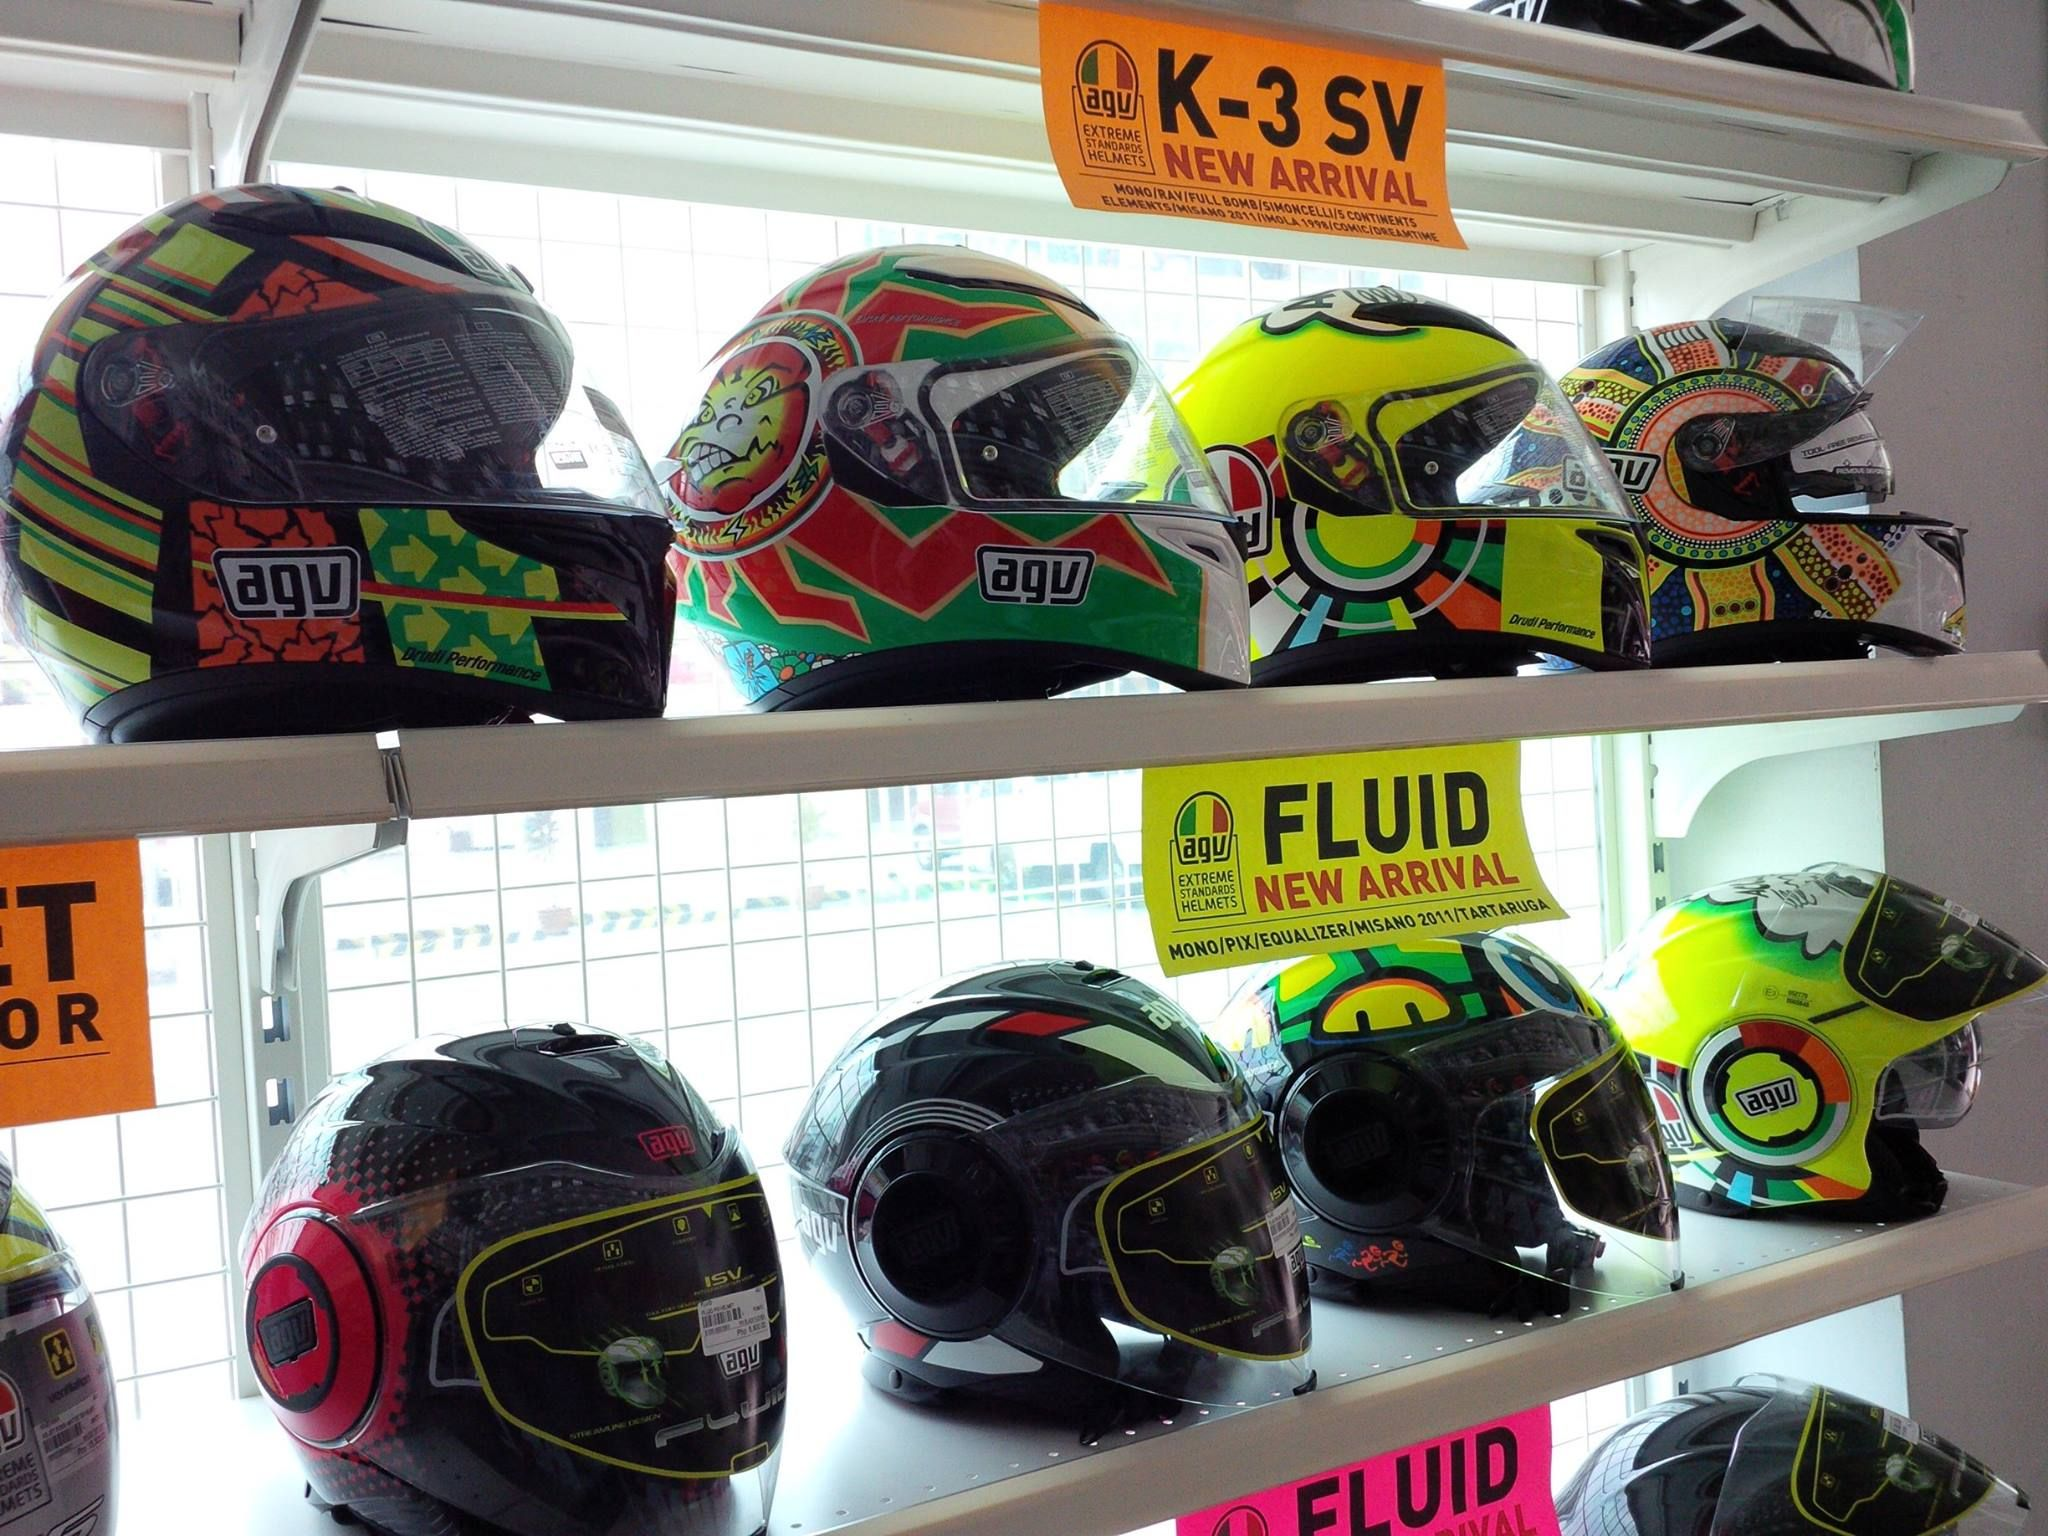 Visit us at MotoMarket Libis for new arrival of AGV